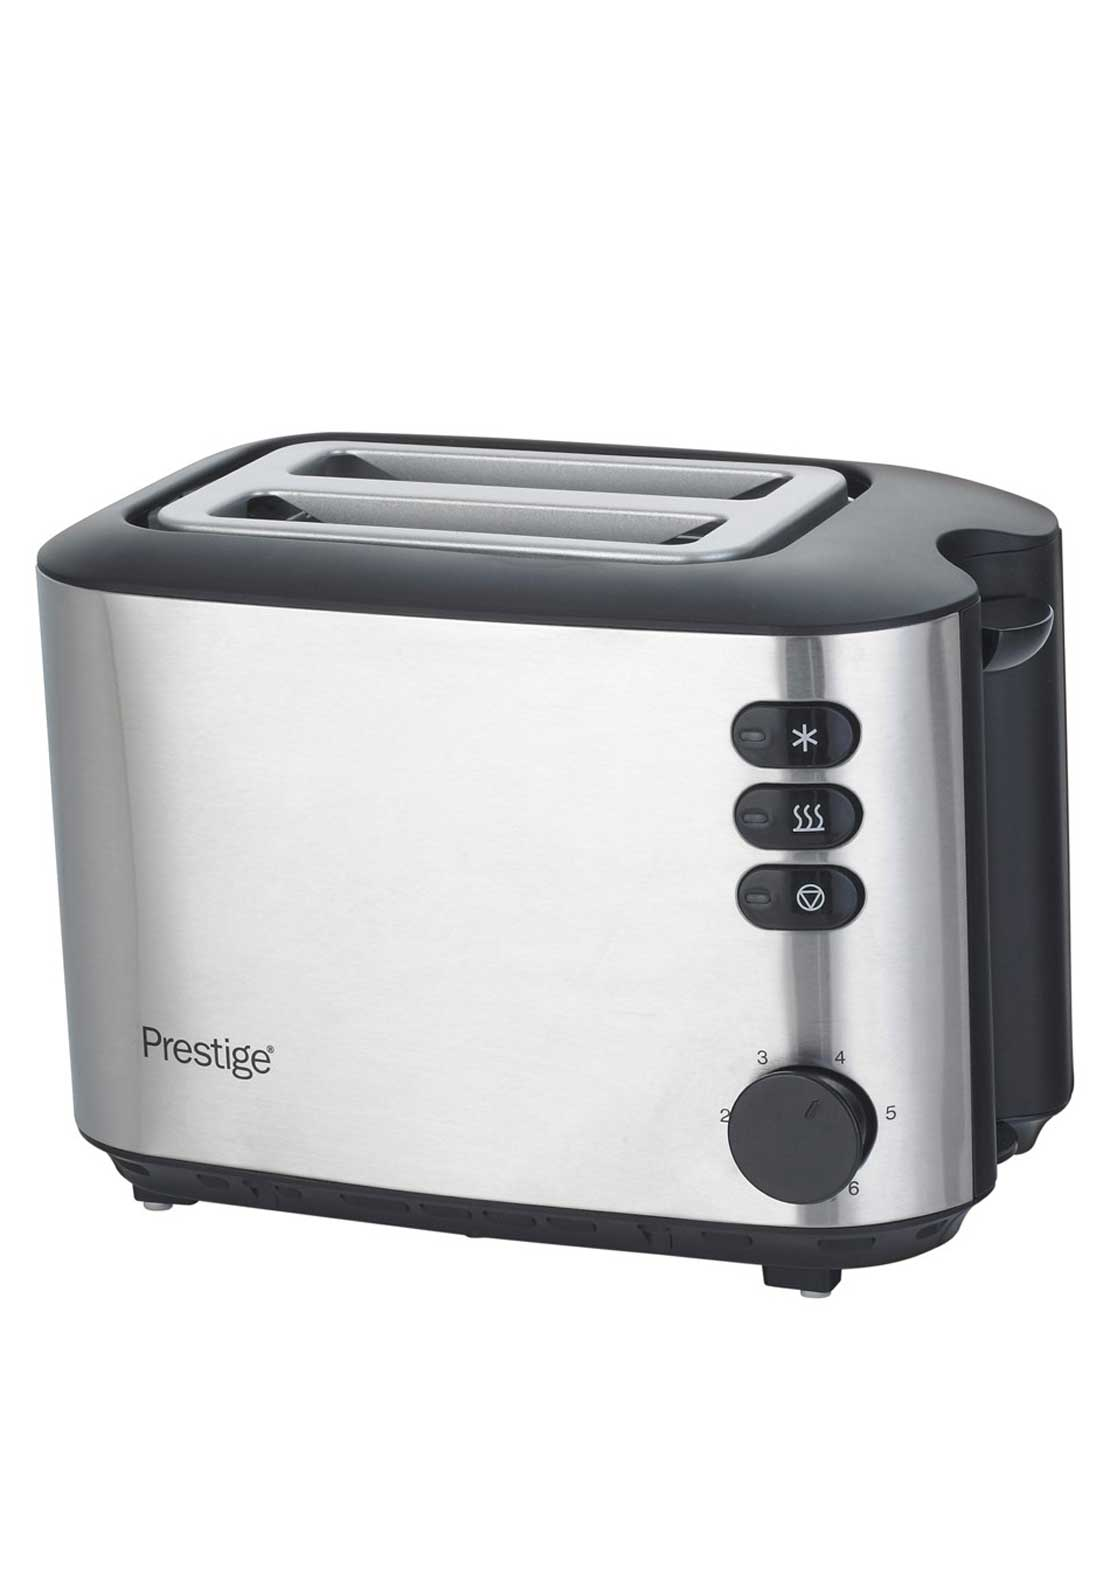 Prestige Brushed Stainless Steel 2 Slice Toaster